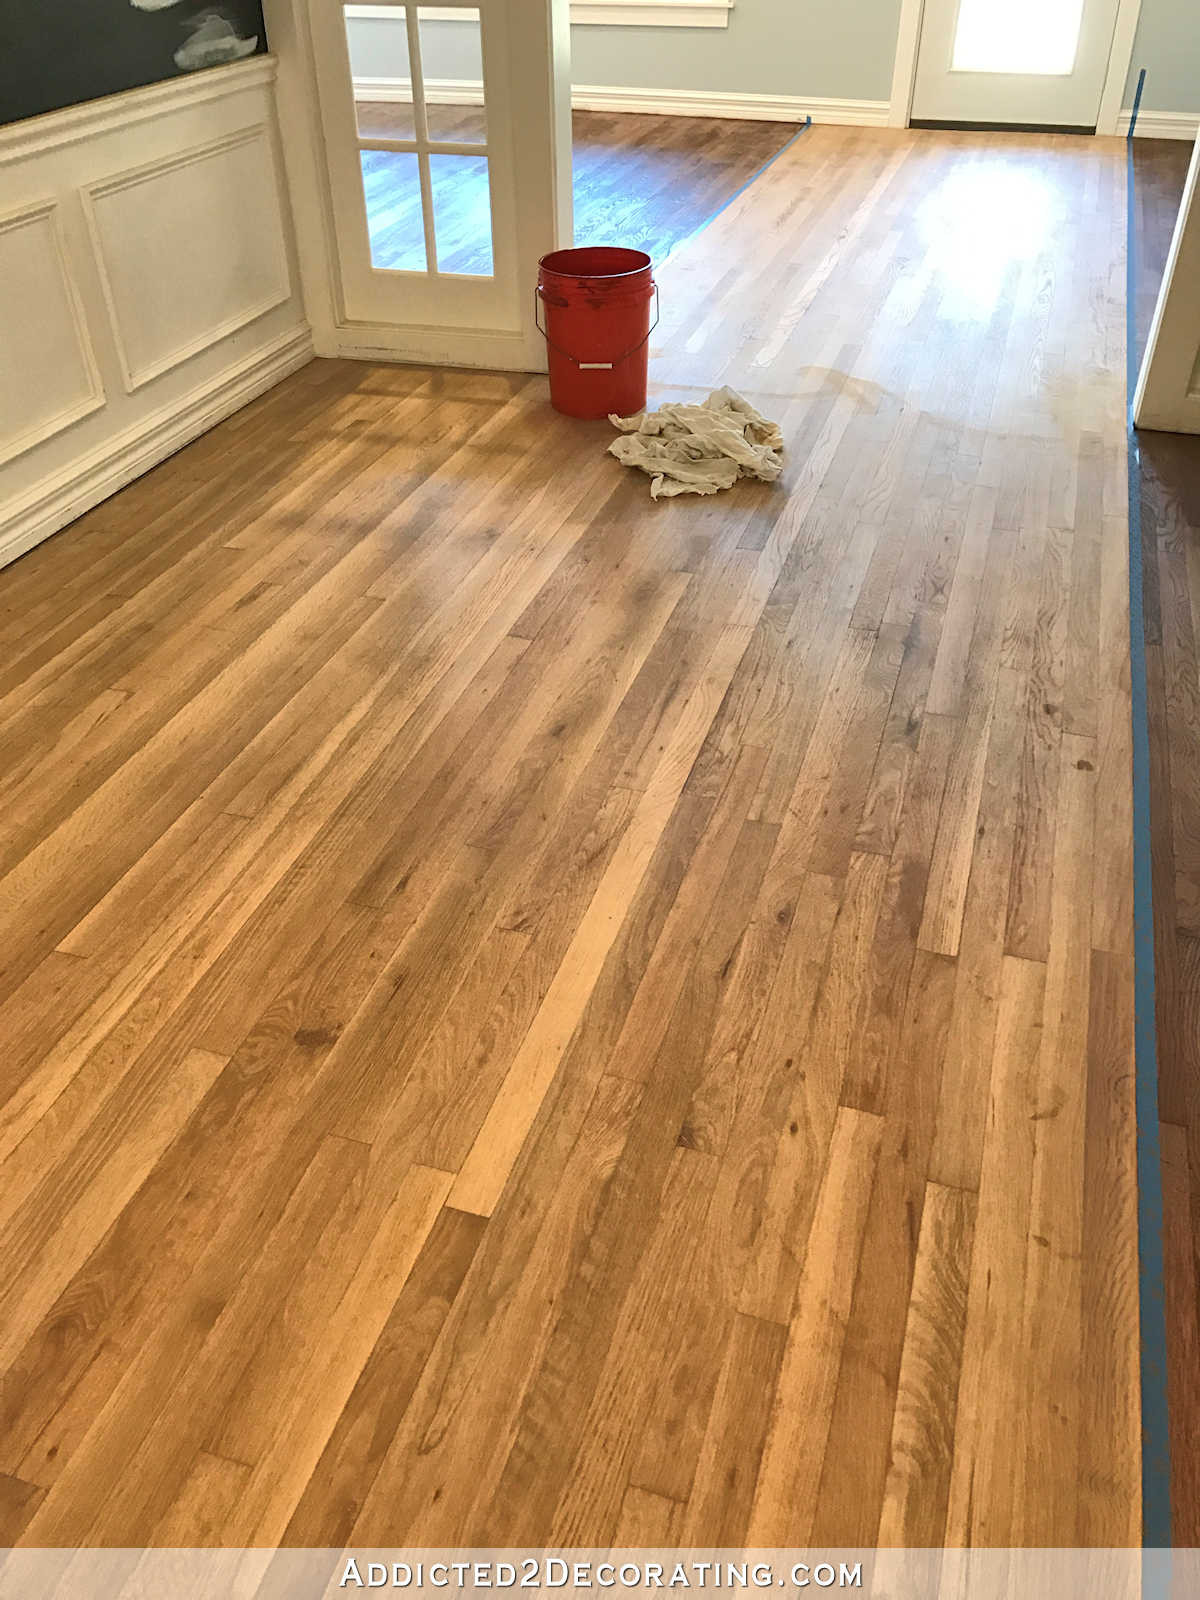 29 attractive Refinish Hardwood Floors In One Day 2021 free download refinish hardwood floors in one day of adventures in staining my red oak hardwood floors products process inside staining red oak hardwood floors 8 entryway and music room wood conditioner